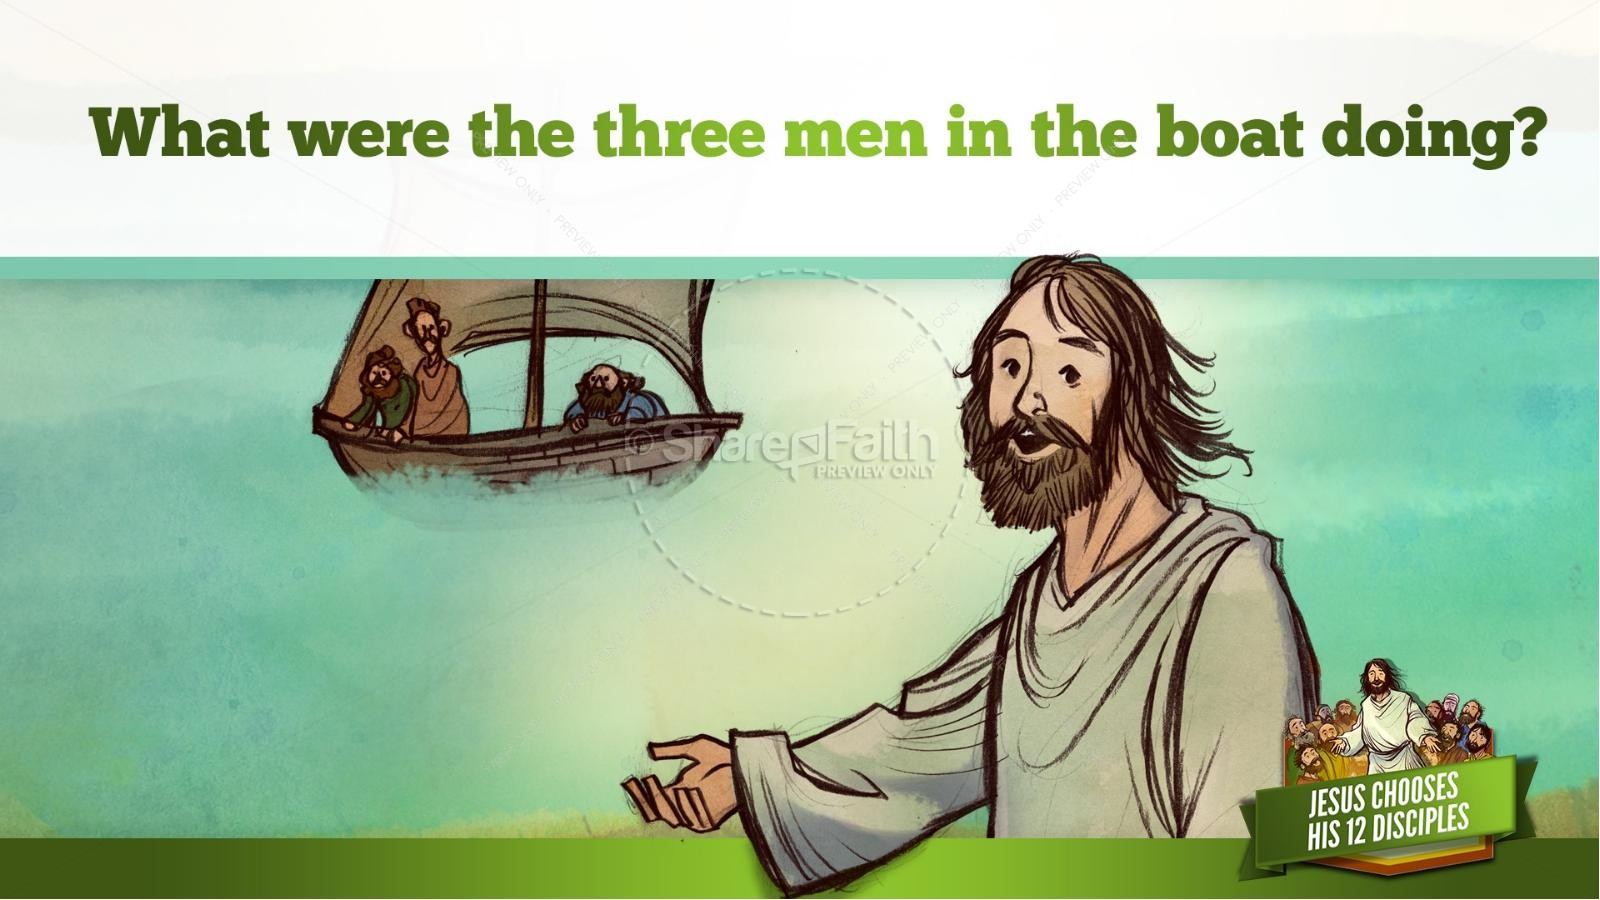 Jesus Chooses His 12 Disciples Kids Bible Story